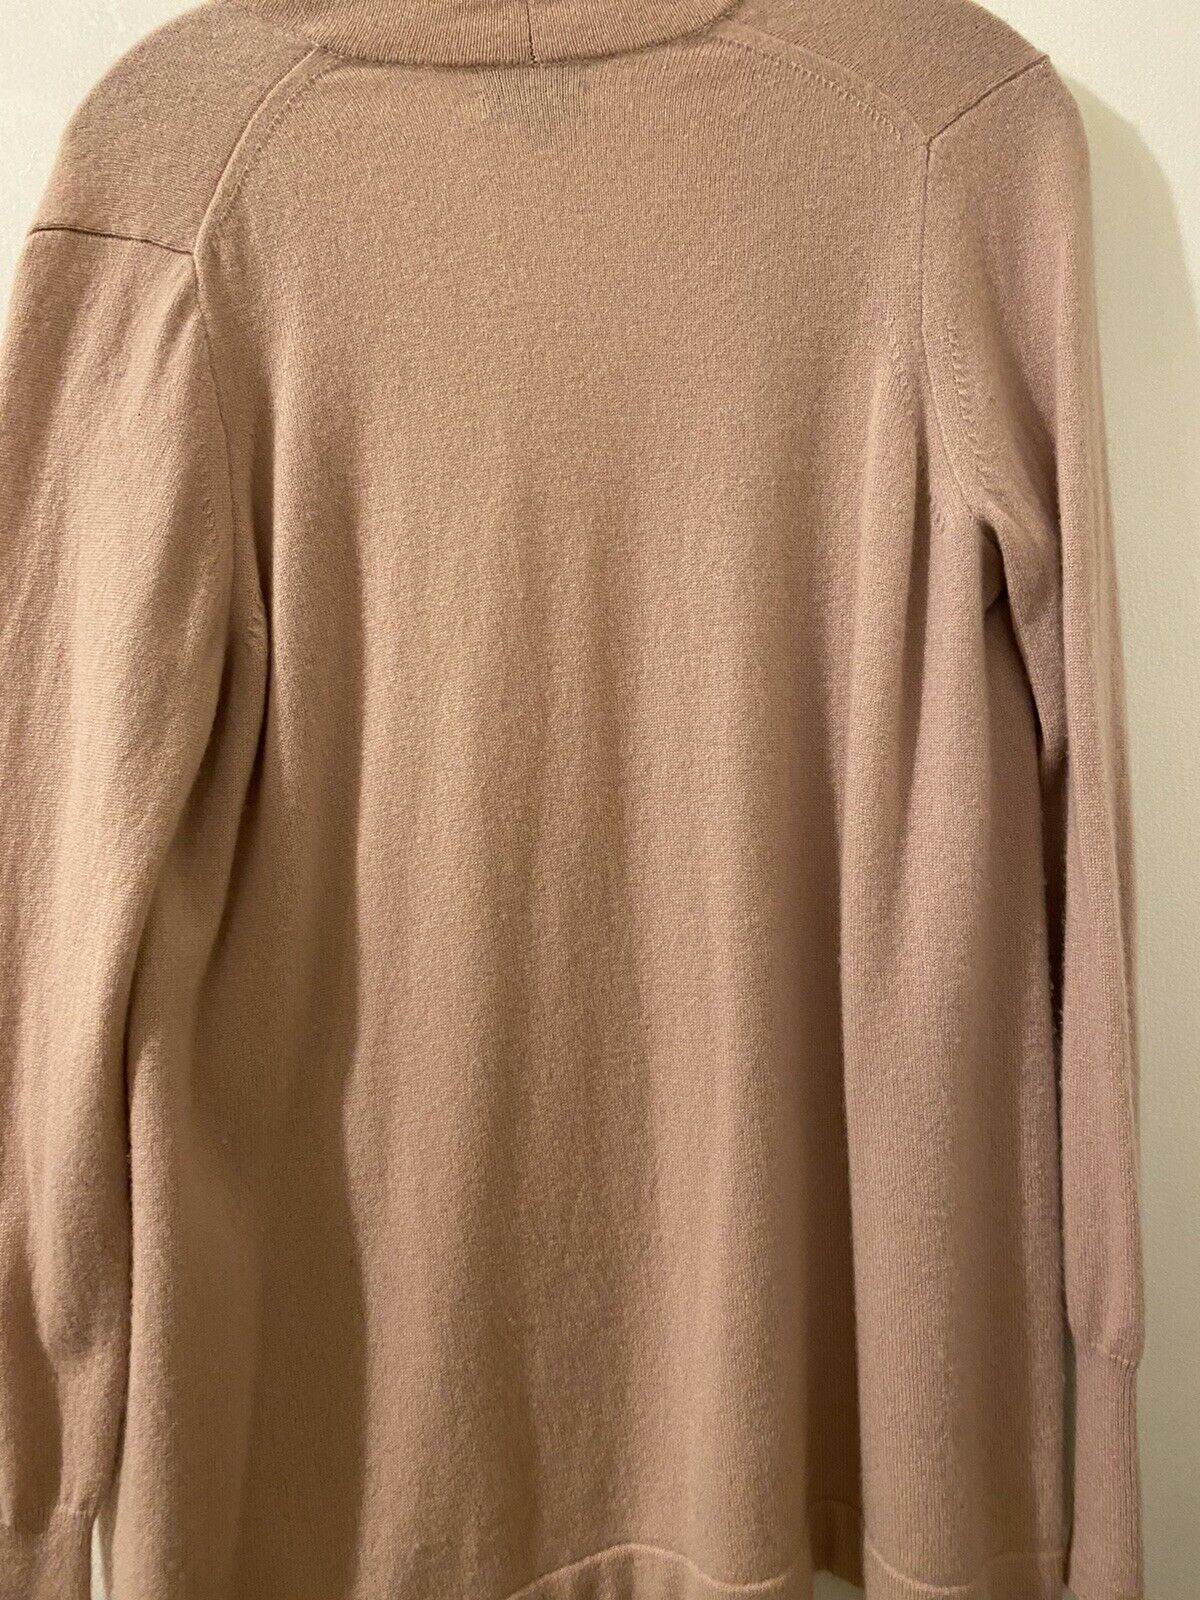 J. Crew Collection Cashmere Open Cardigan Size S … - image 4